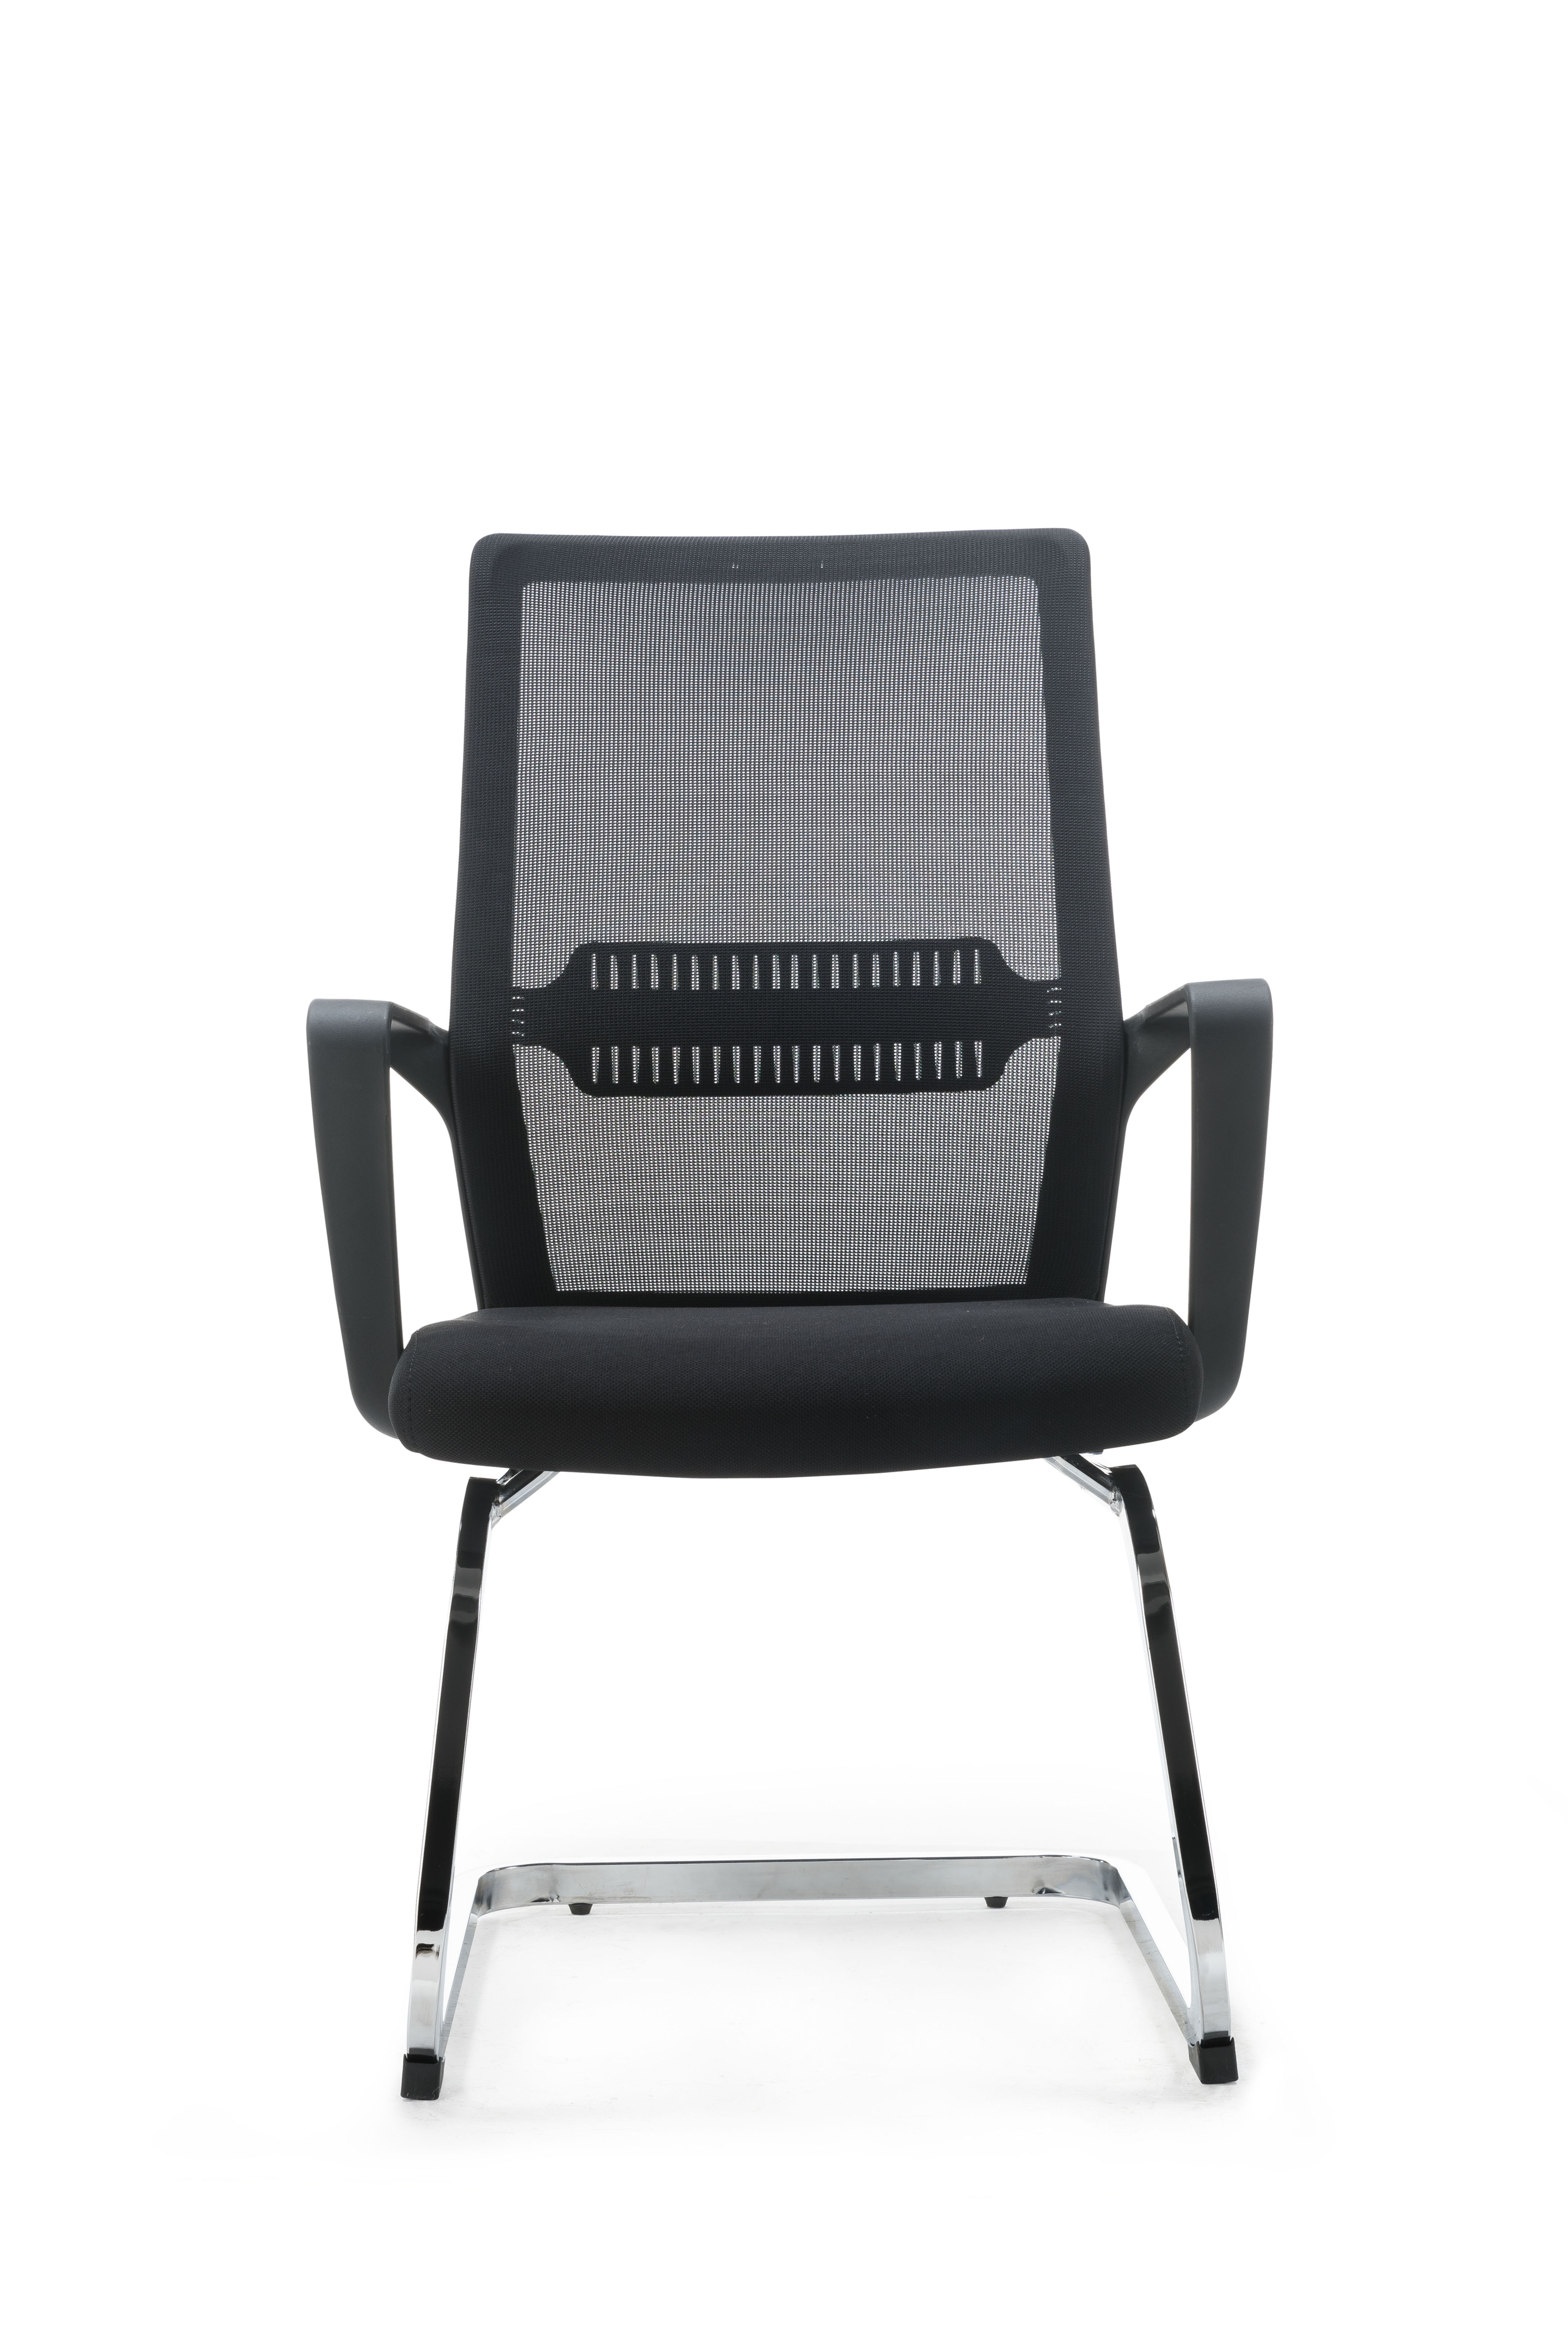 Top Of The Line Chair Office Chairs Topline Furniture